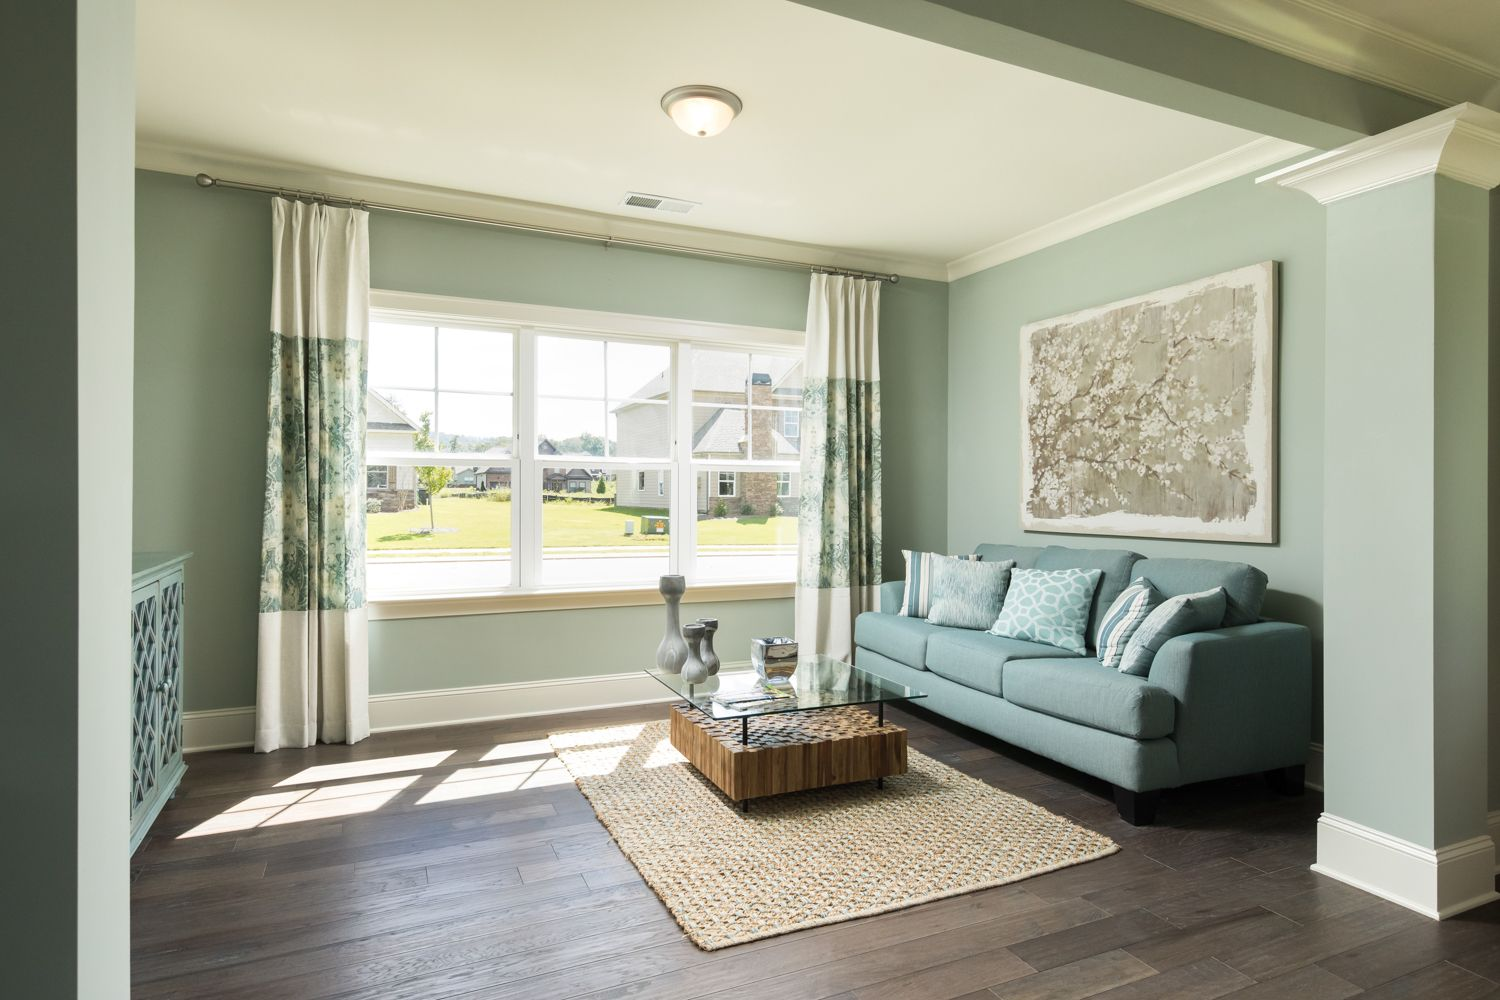 This sitting area in the Master Suite of our model home in